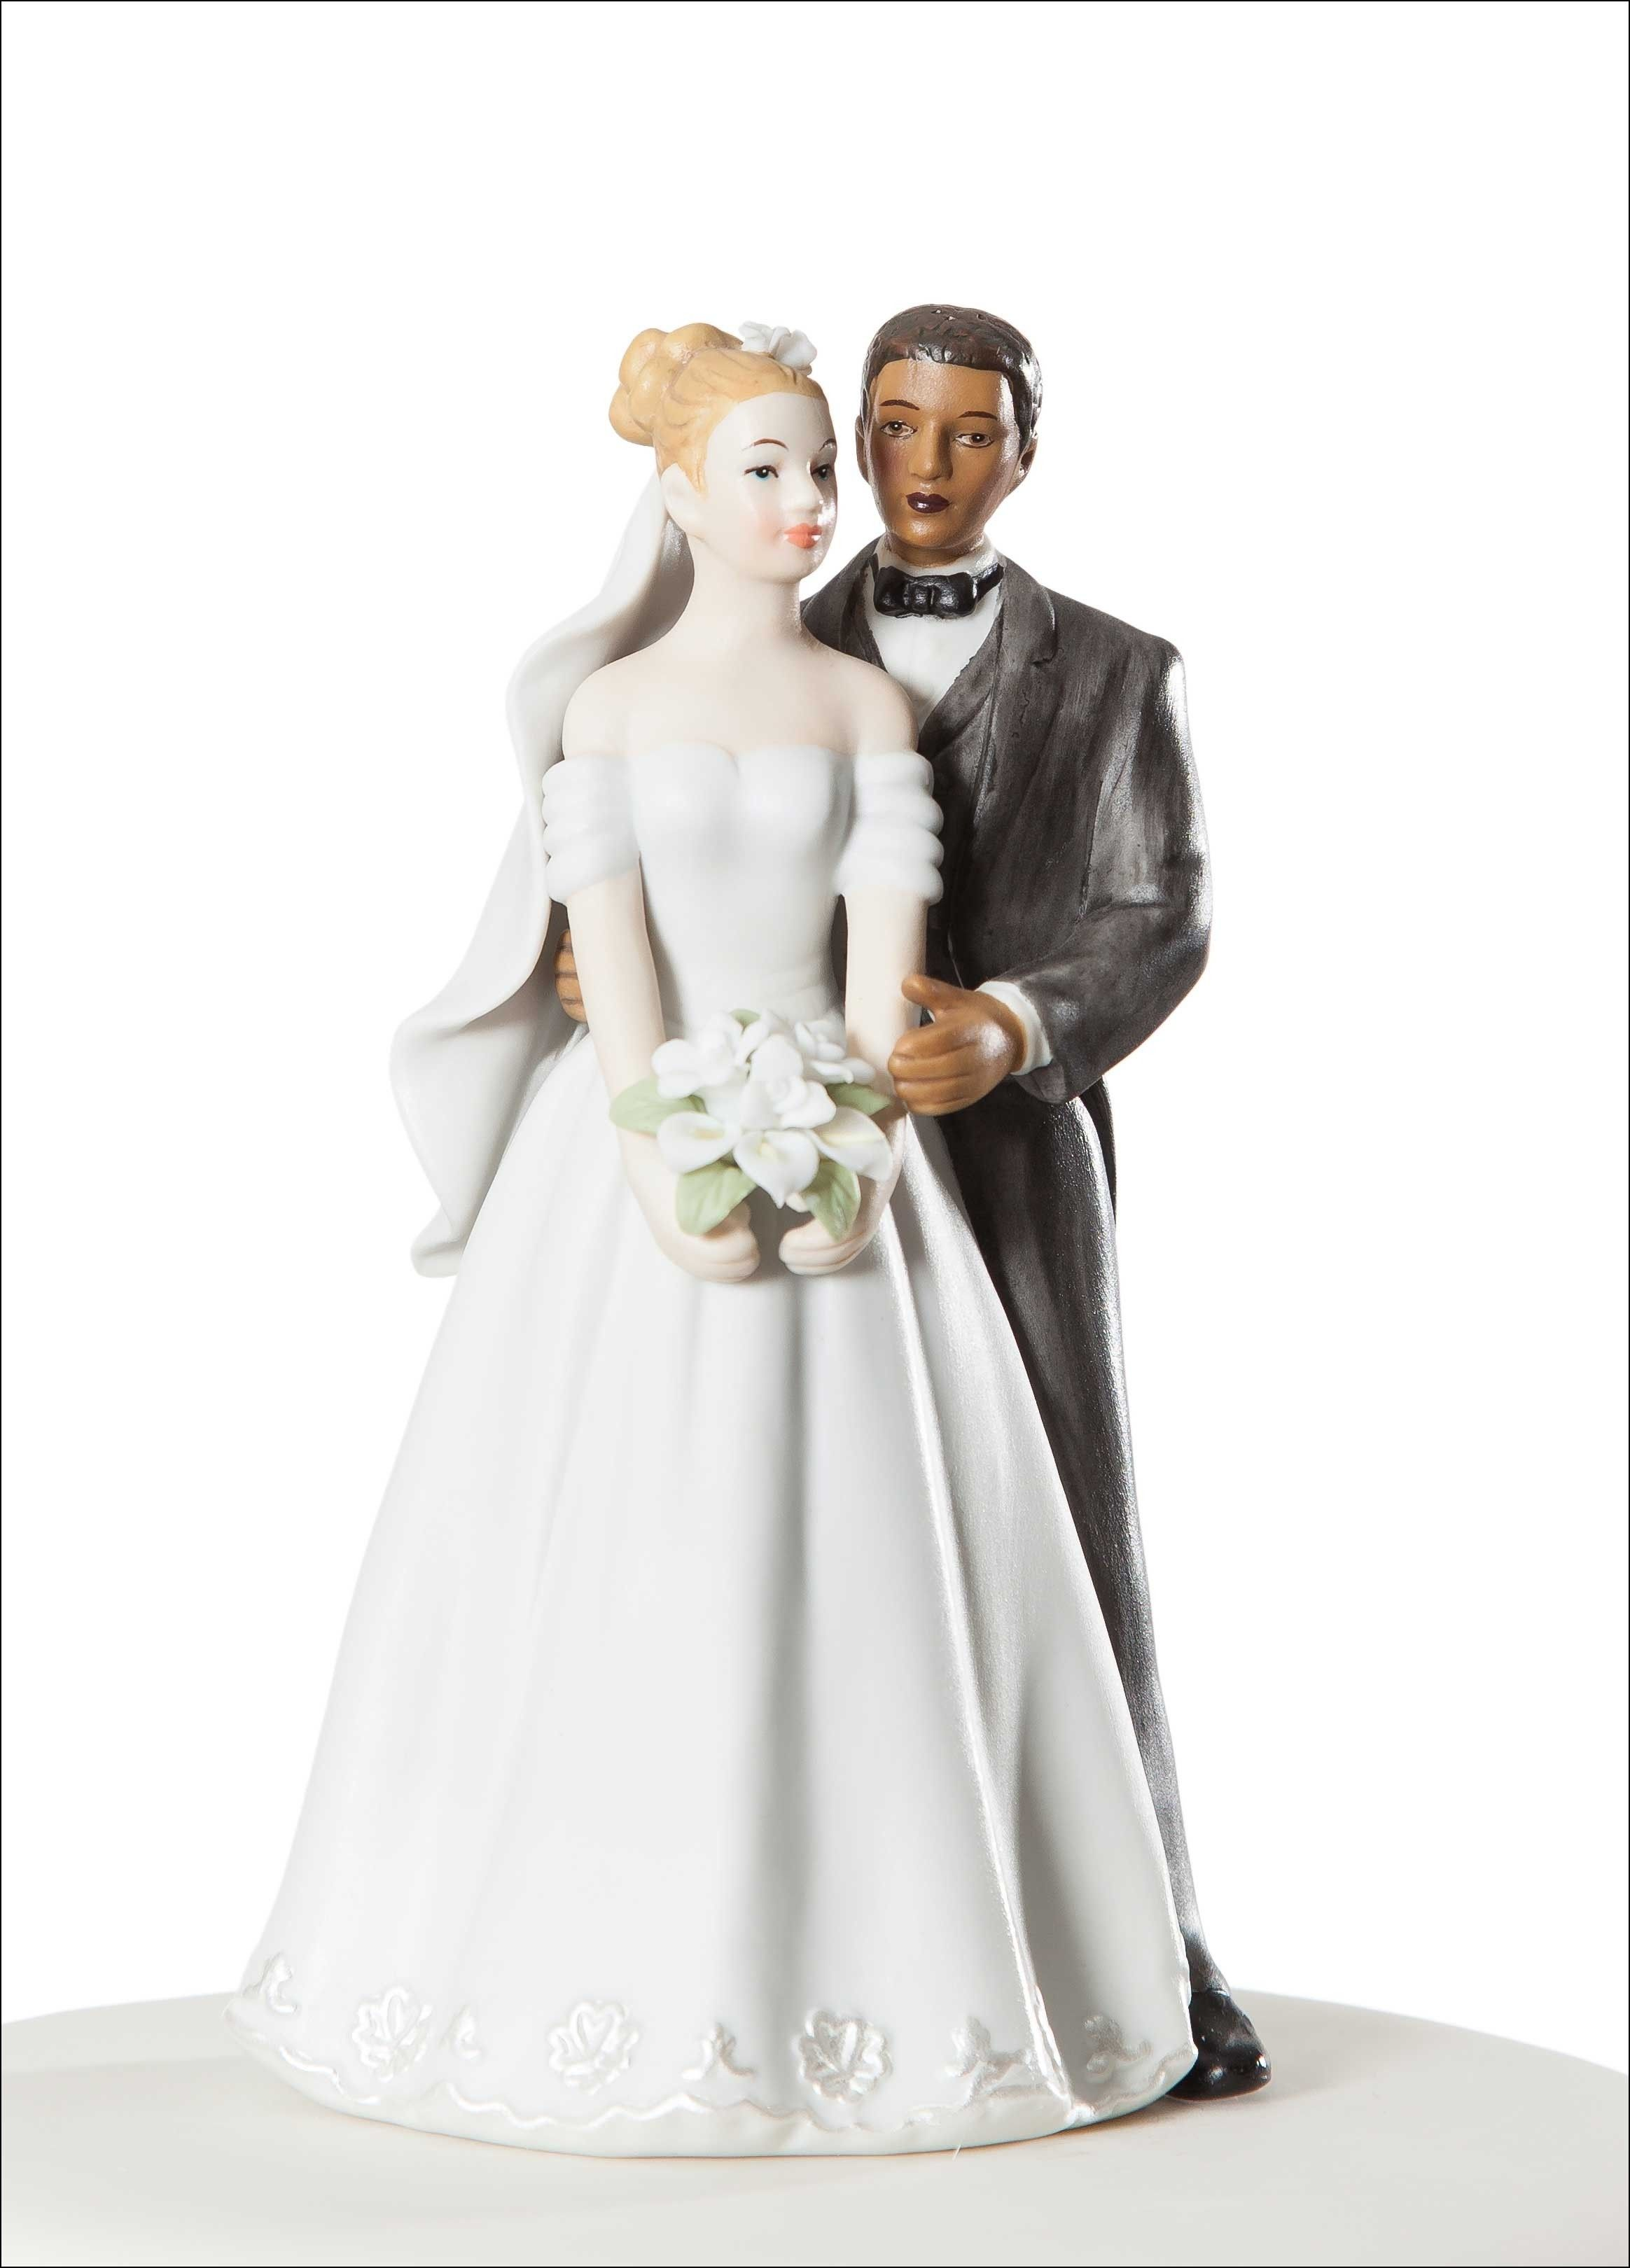 Interracial Wedding Cake toppers Funny | Wedding Ideas | Pinterest ...